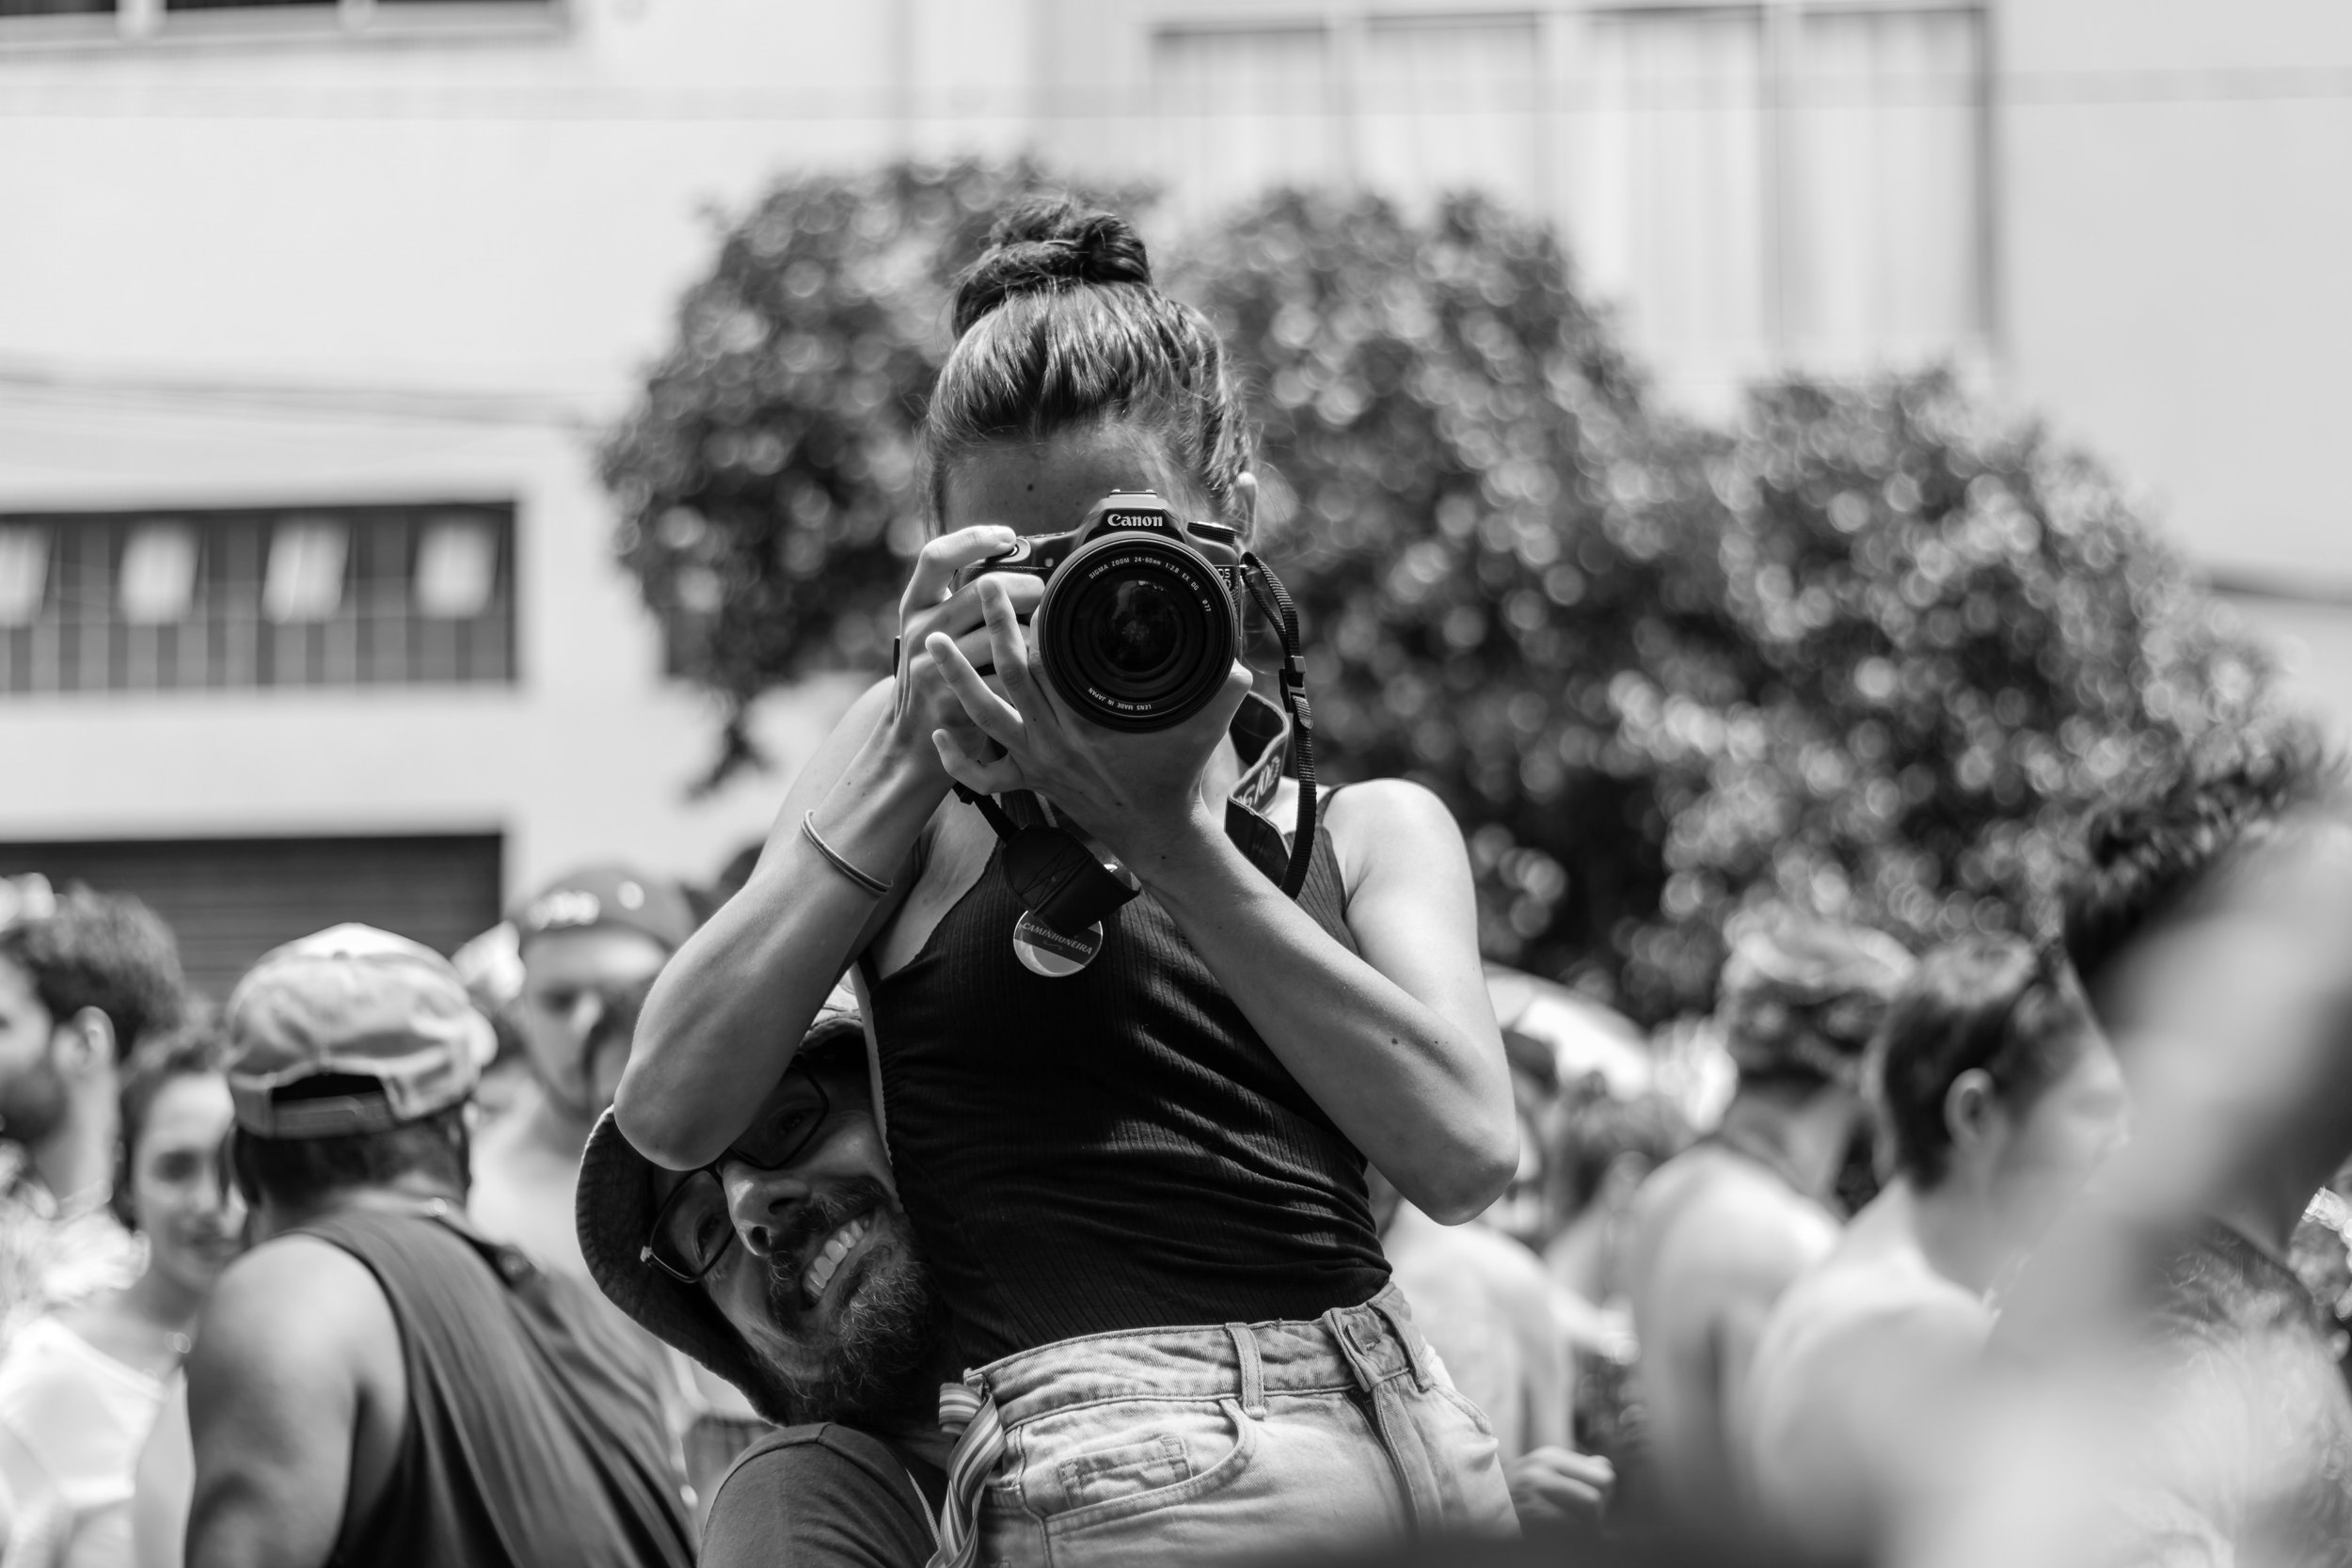 Without proper lensing, you will have no discernment -